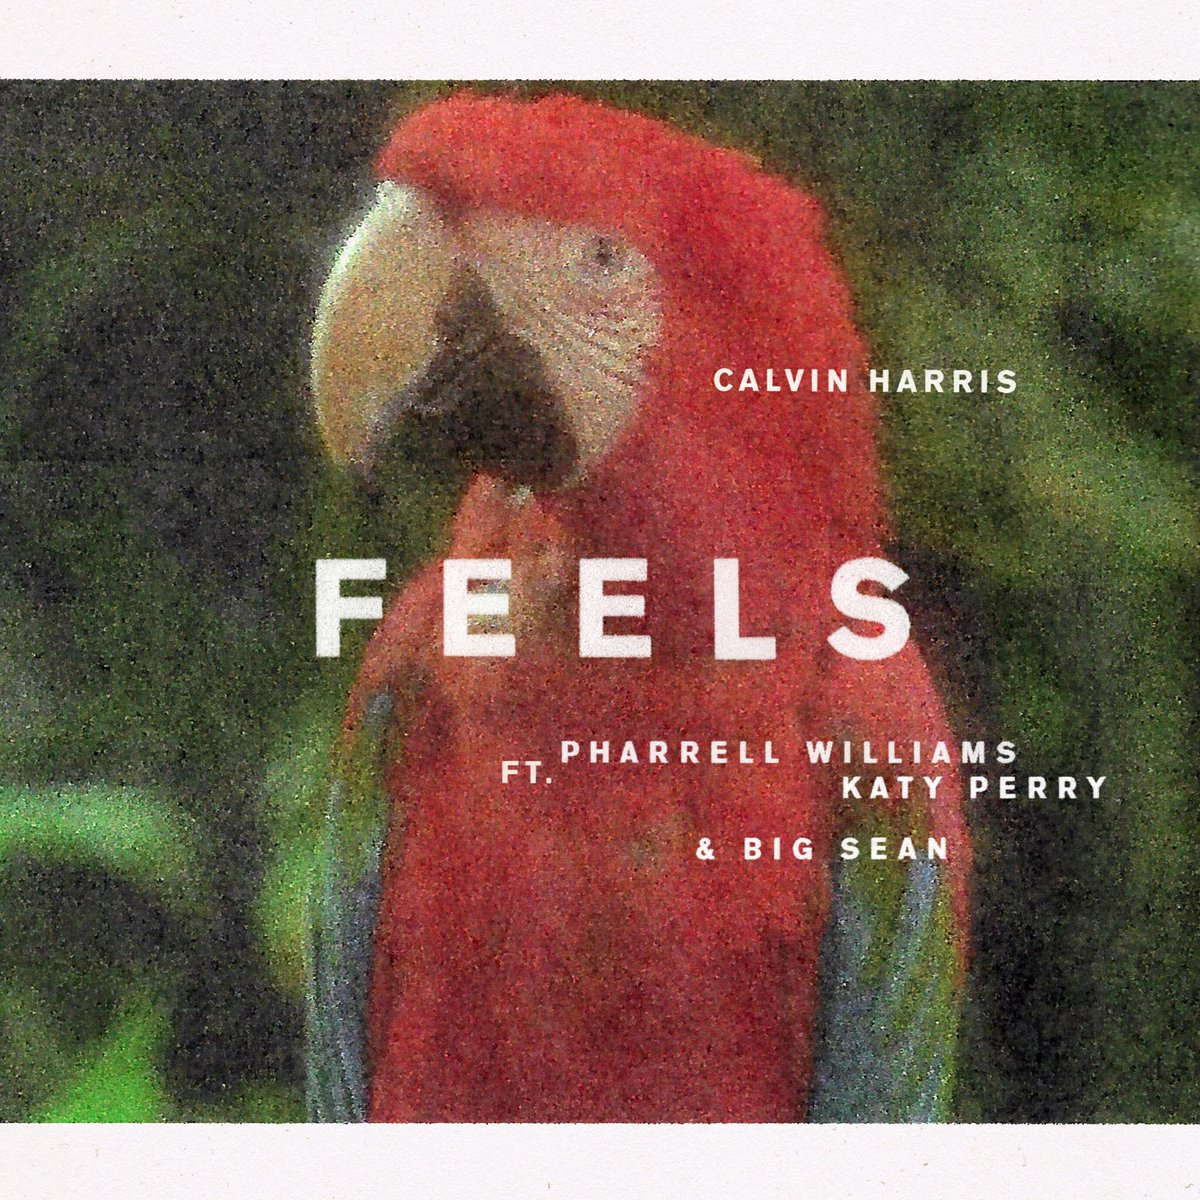 CALVIN HARRIS // PHARRELL WILLIAMS // KATY PERRY // BIG SEAN // FEELS // TOMORROW